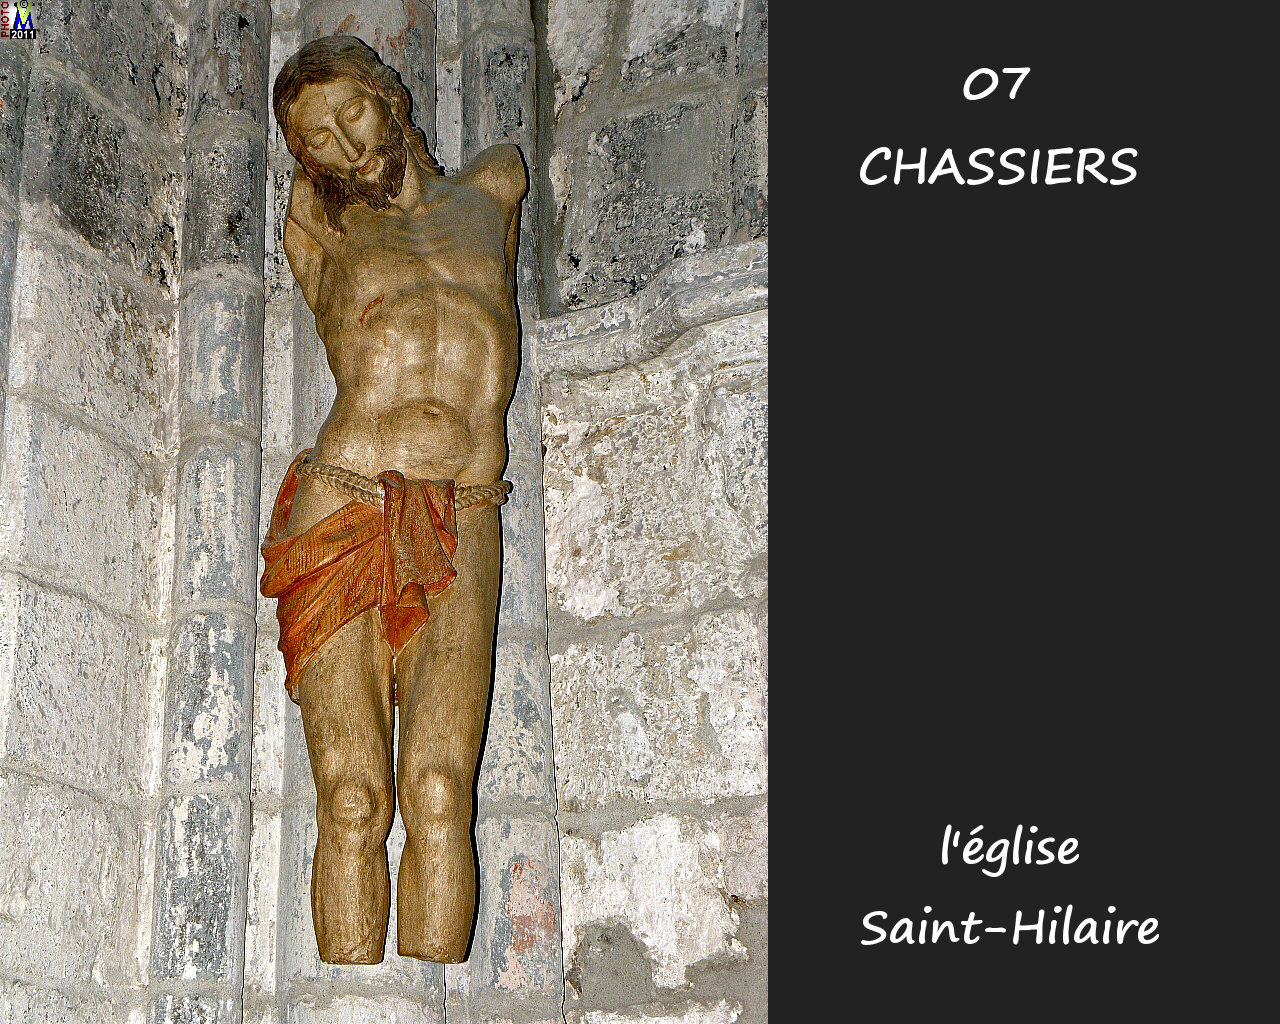 07CHASSIERS_eglise_230.jpg